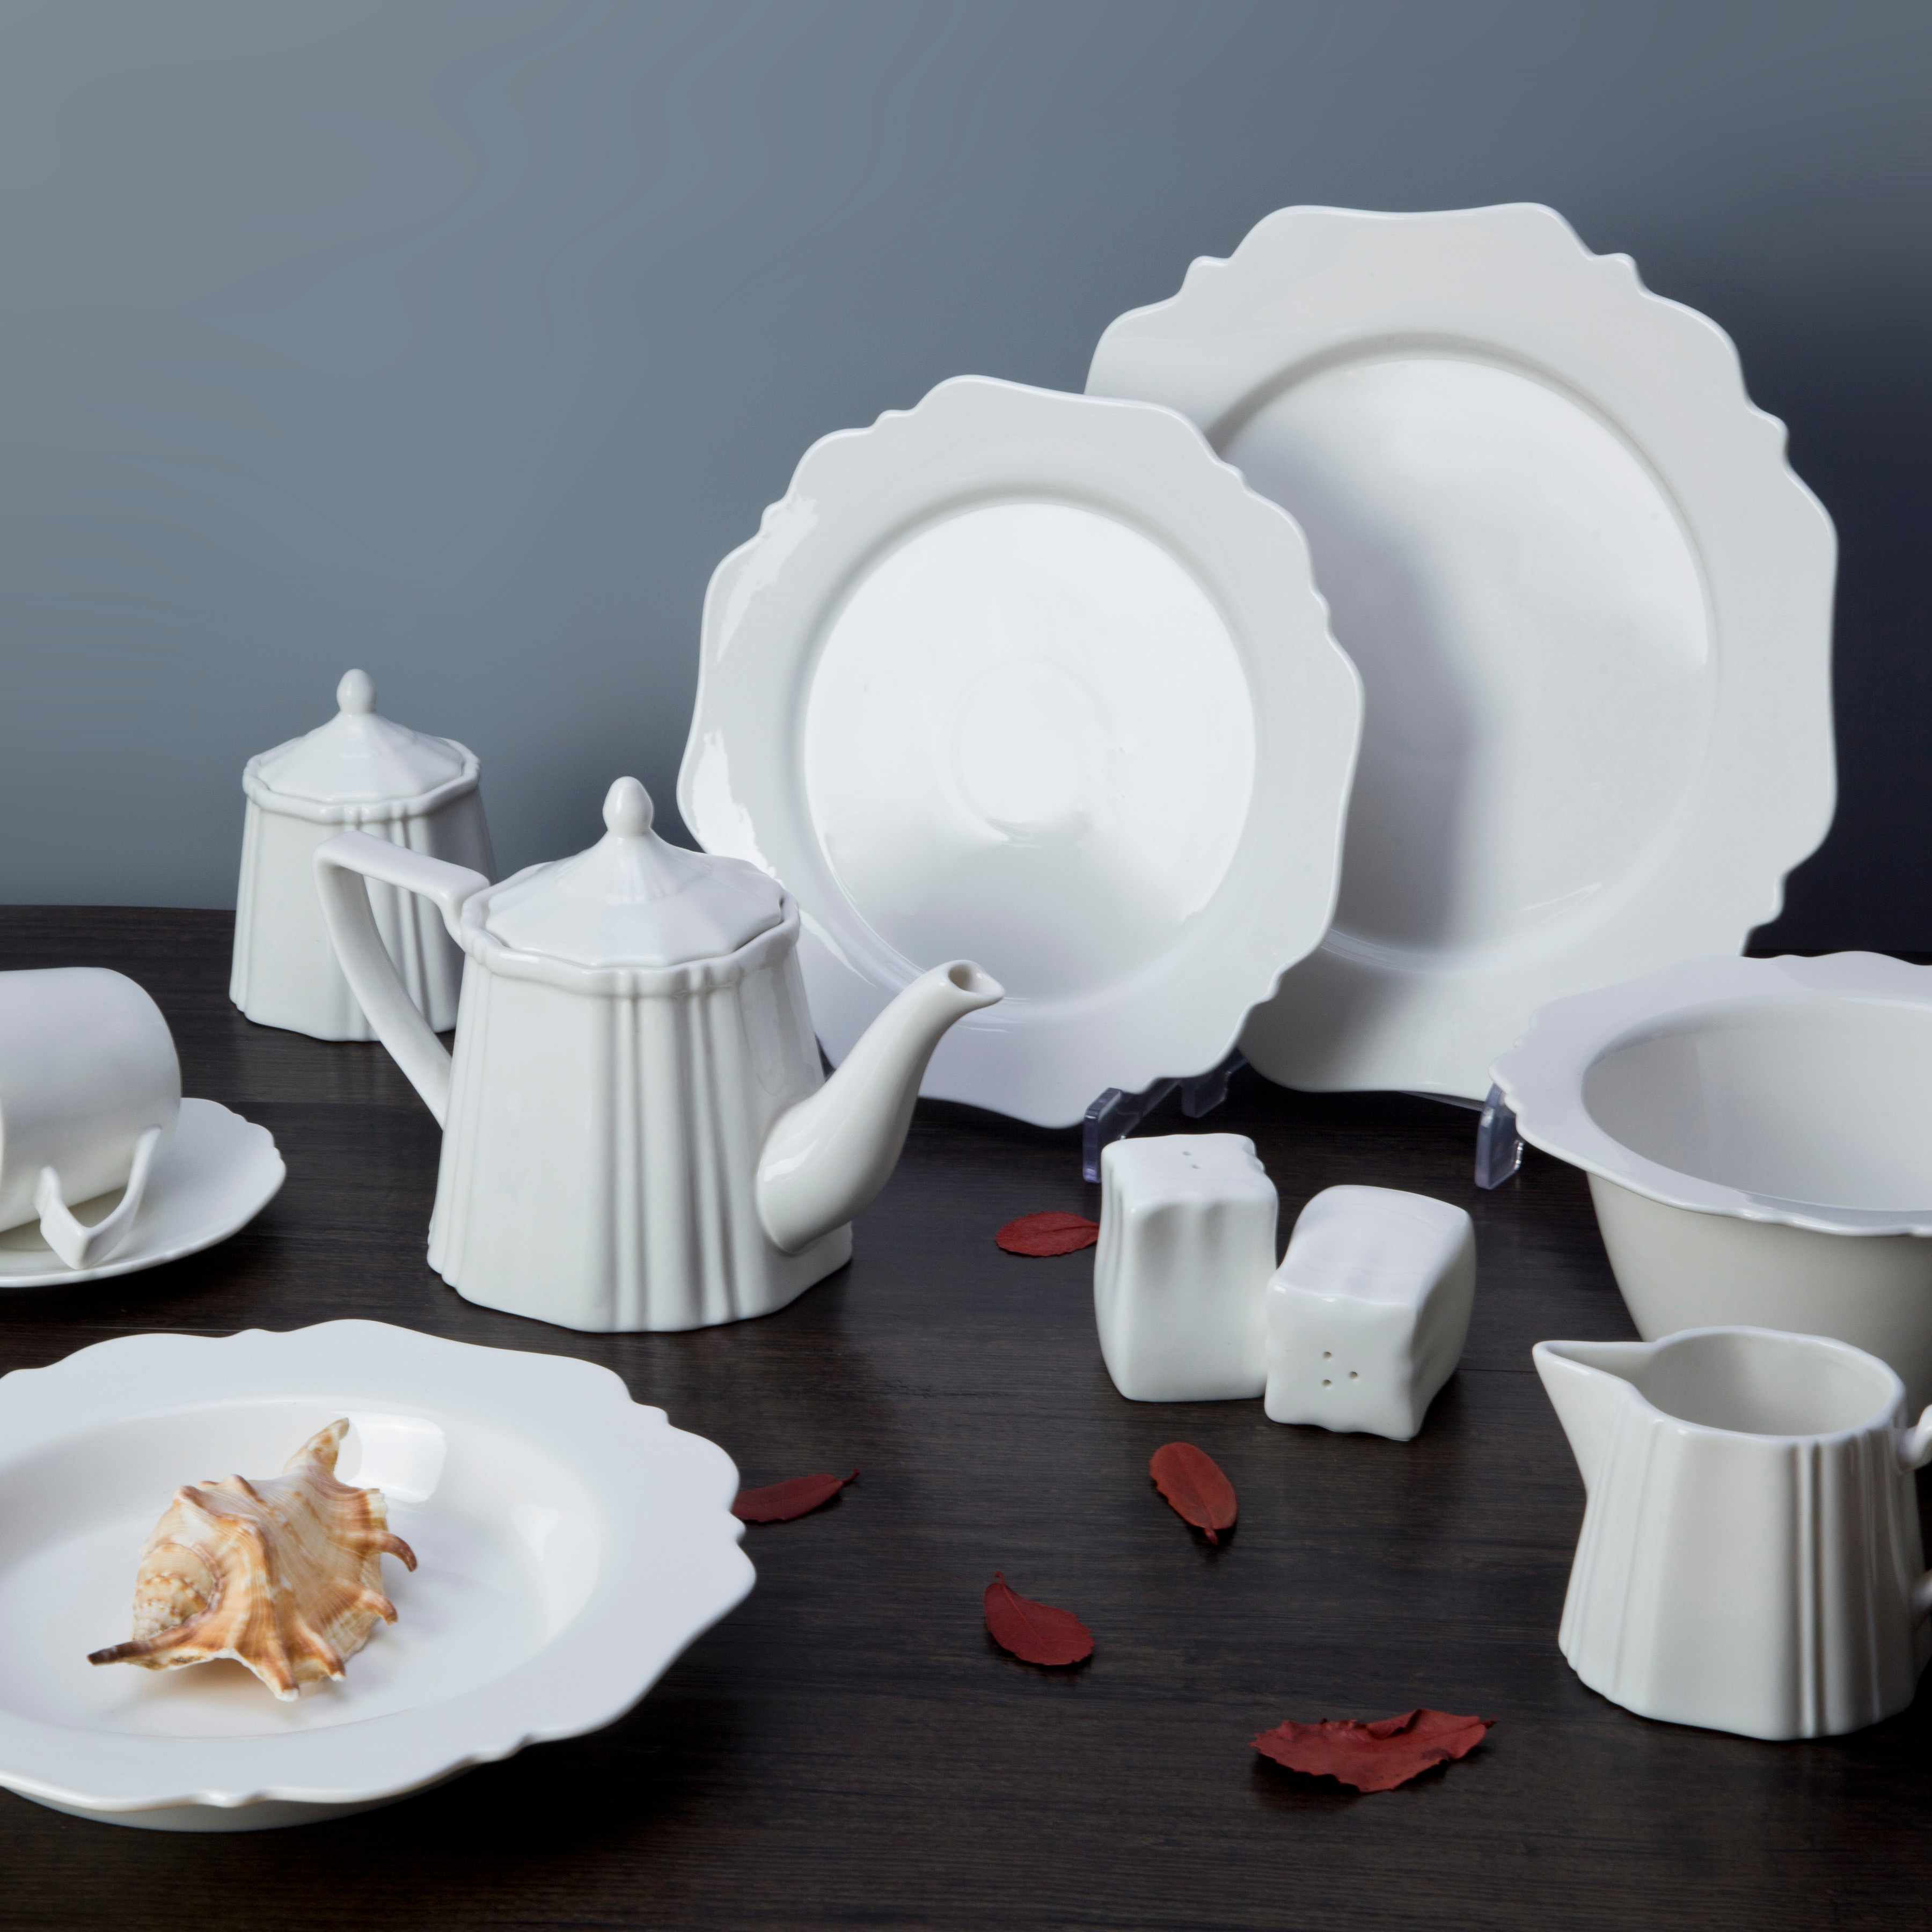 Two Eight White ceramic dinnerware set - HUA BIAN SERIES White Porcelain Dinner Set image4